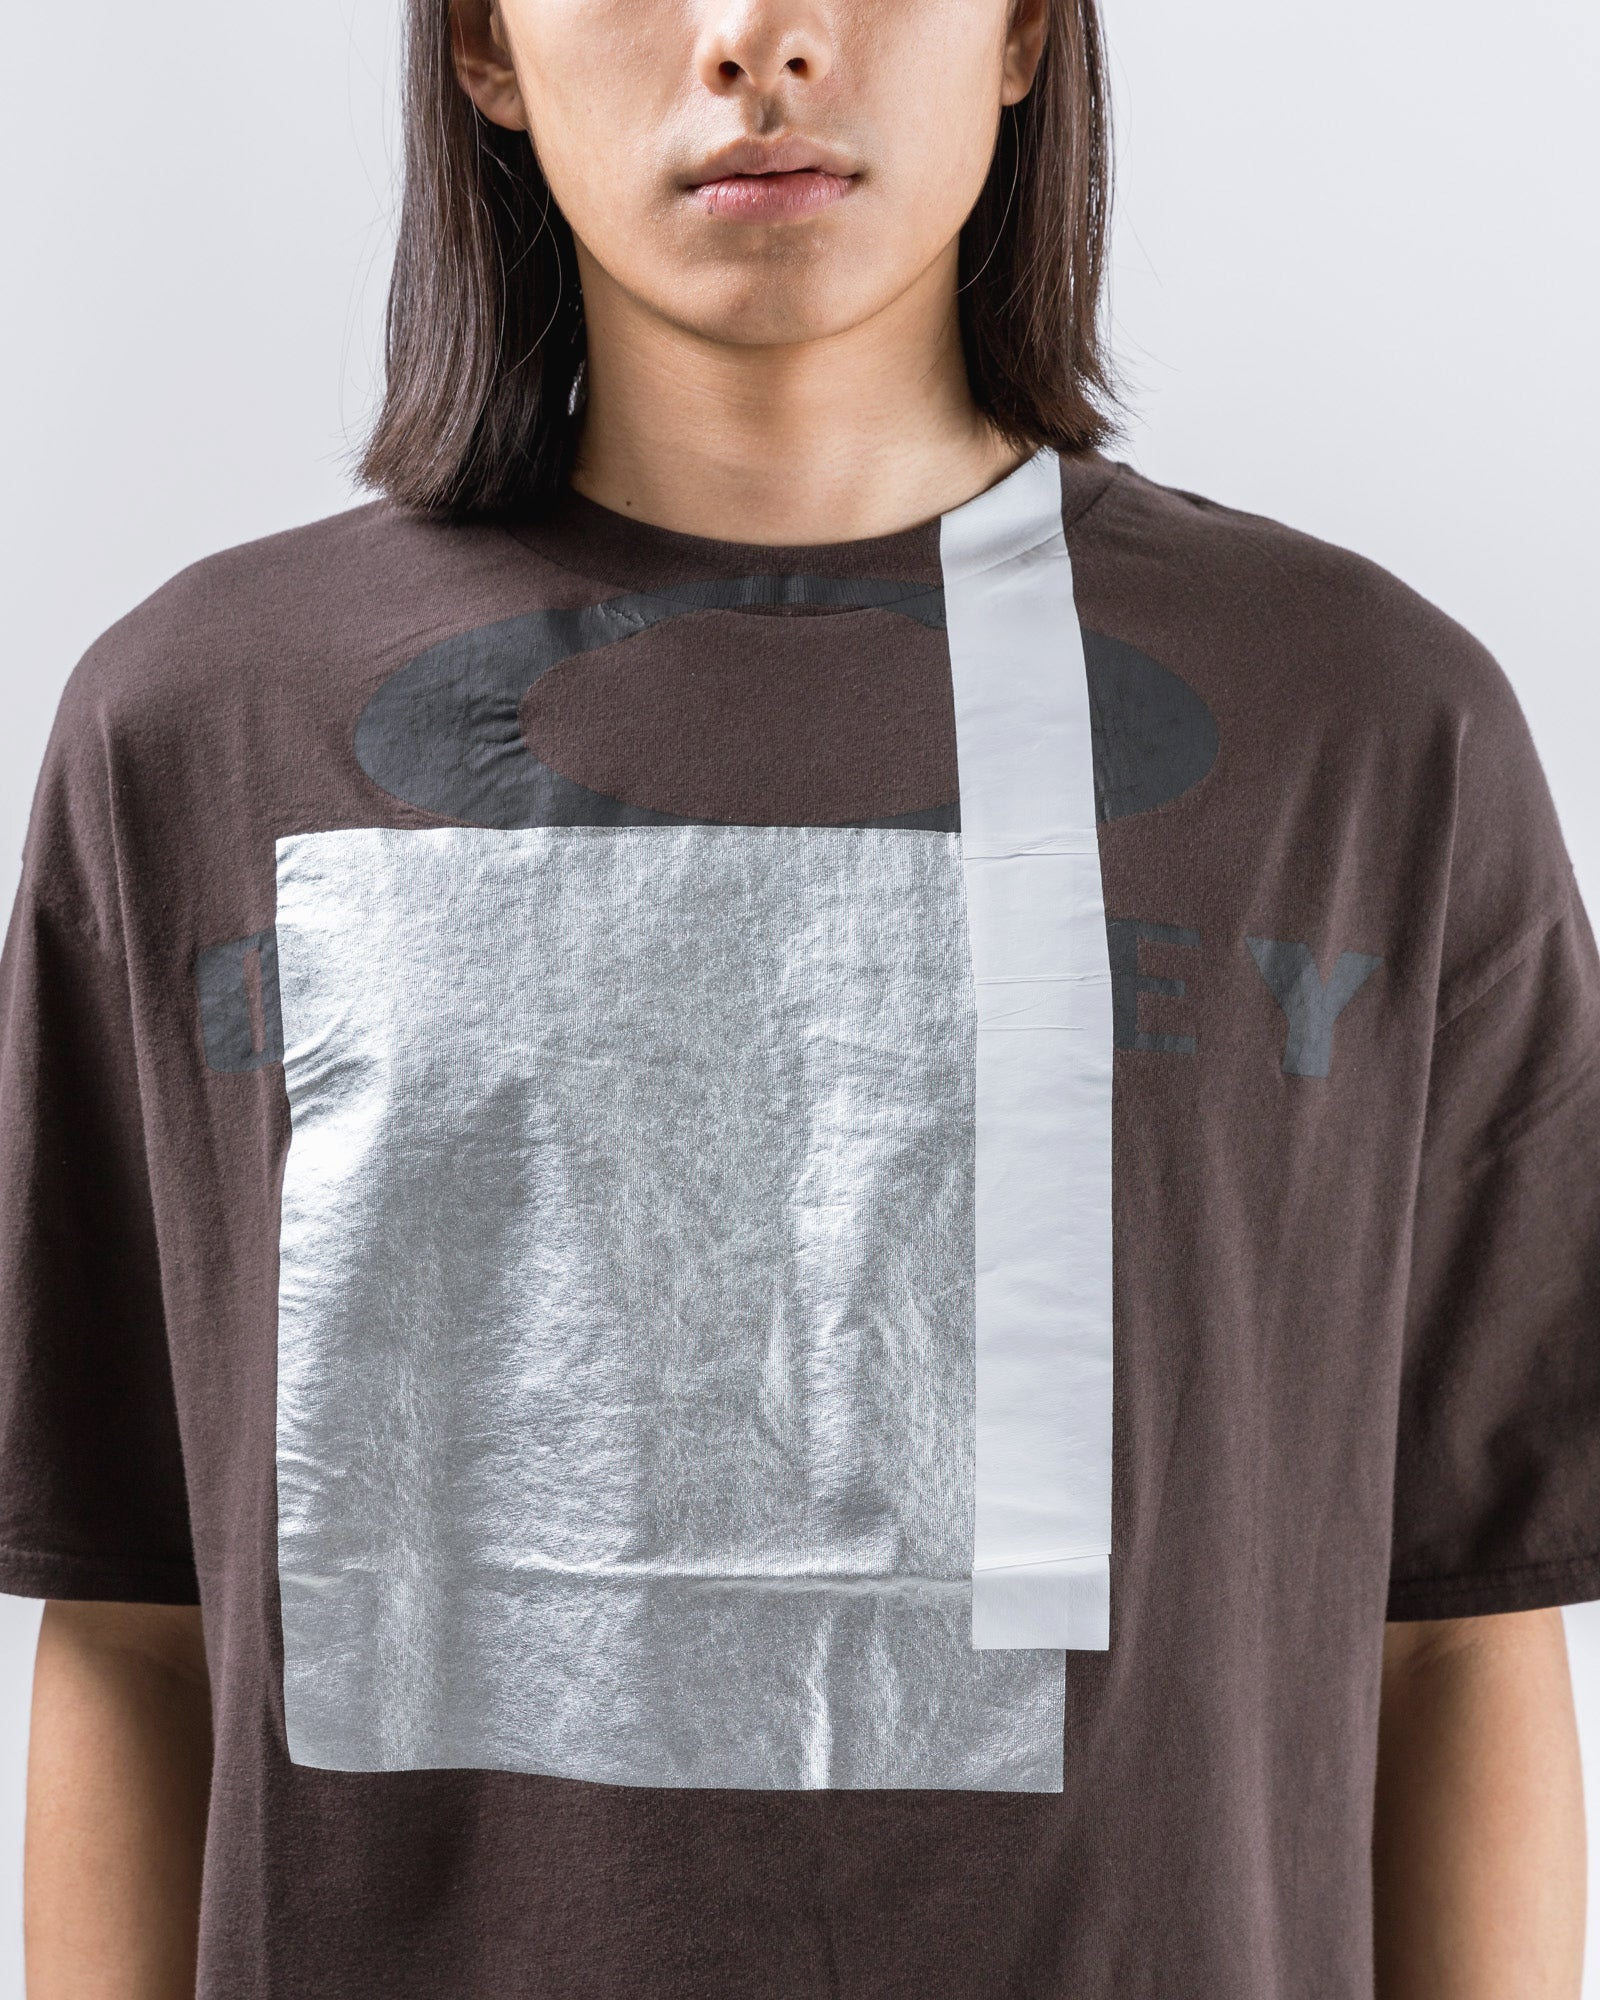 Multifabric T-Shirt in Brown | Oakley by Samuel Ross